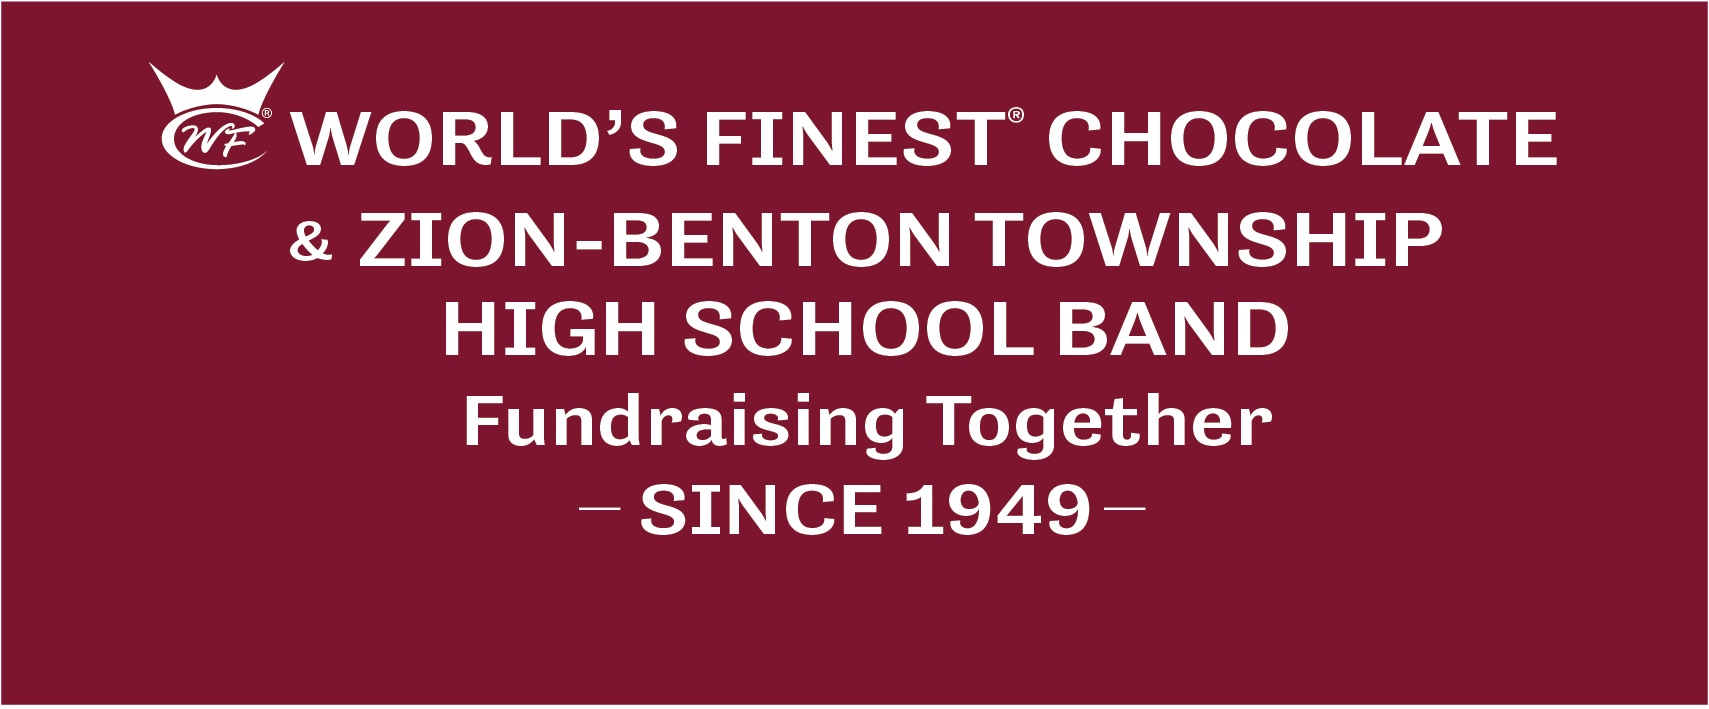 2017.09 Zion Benton Band FB header.jpg